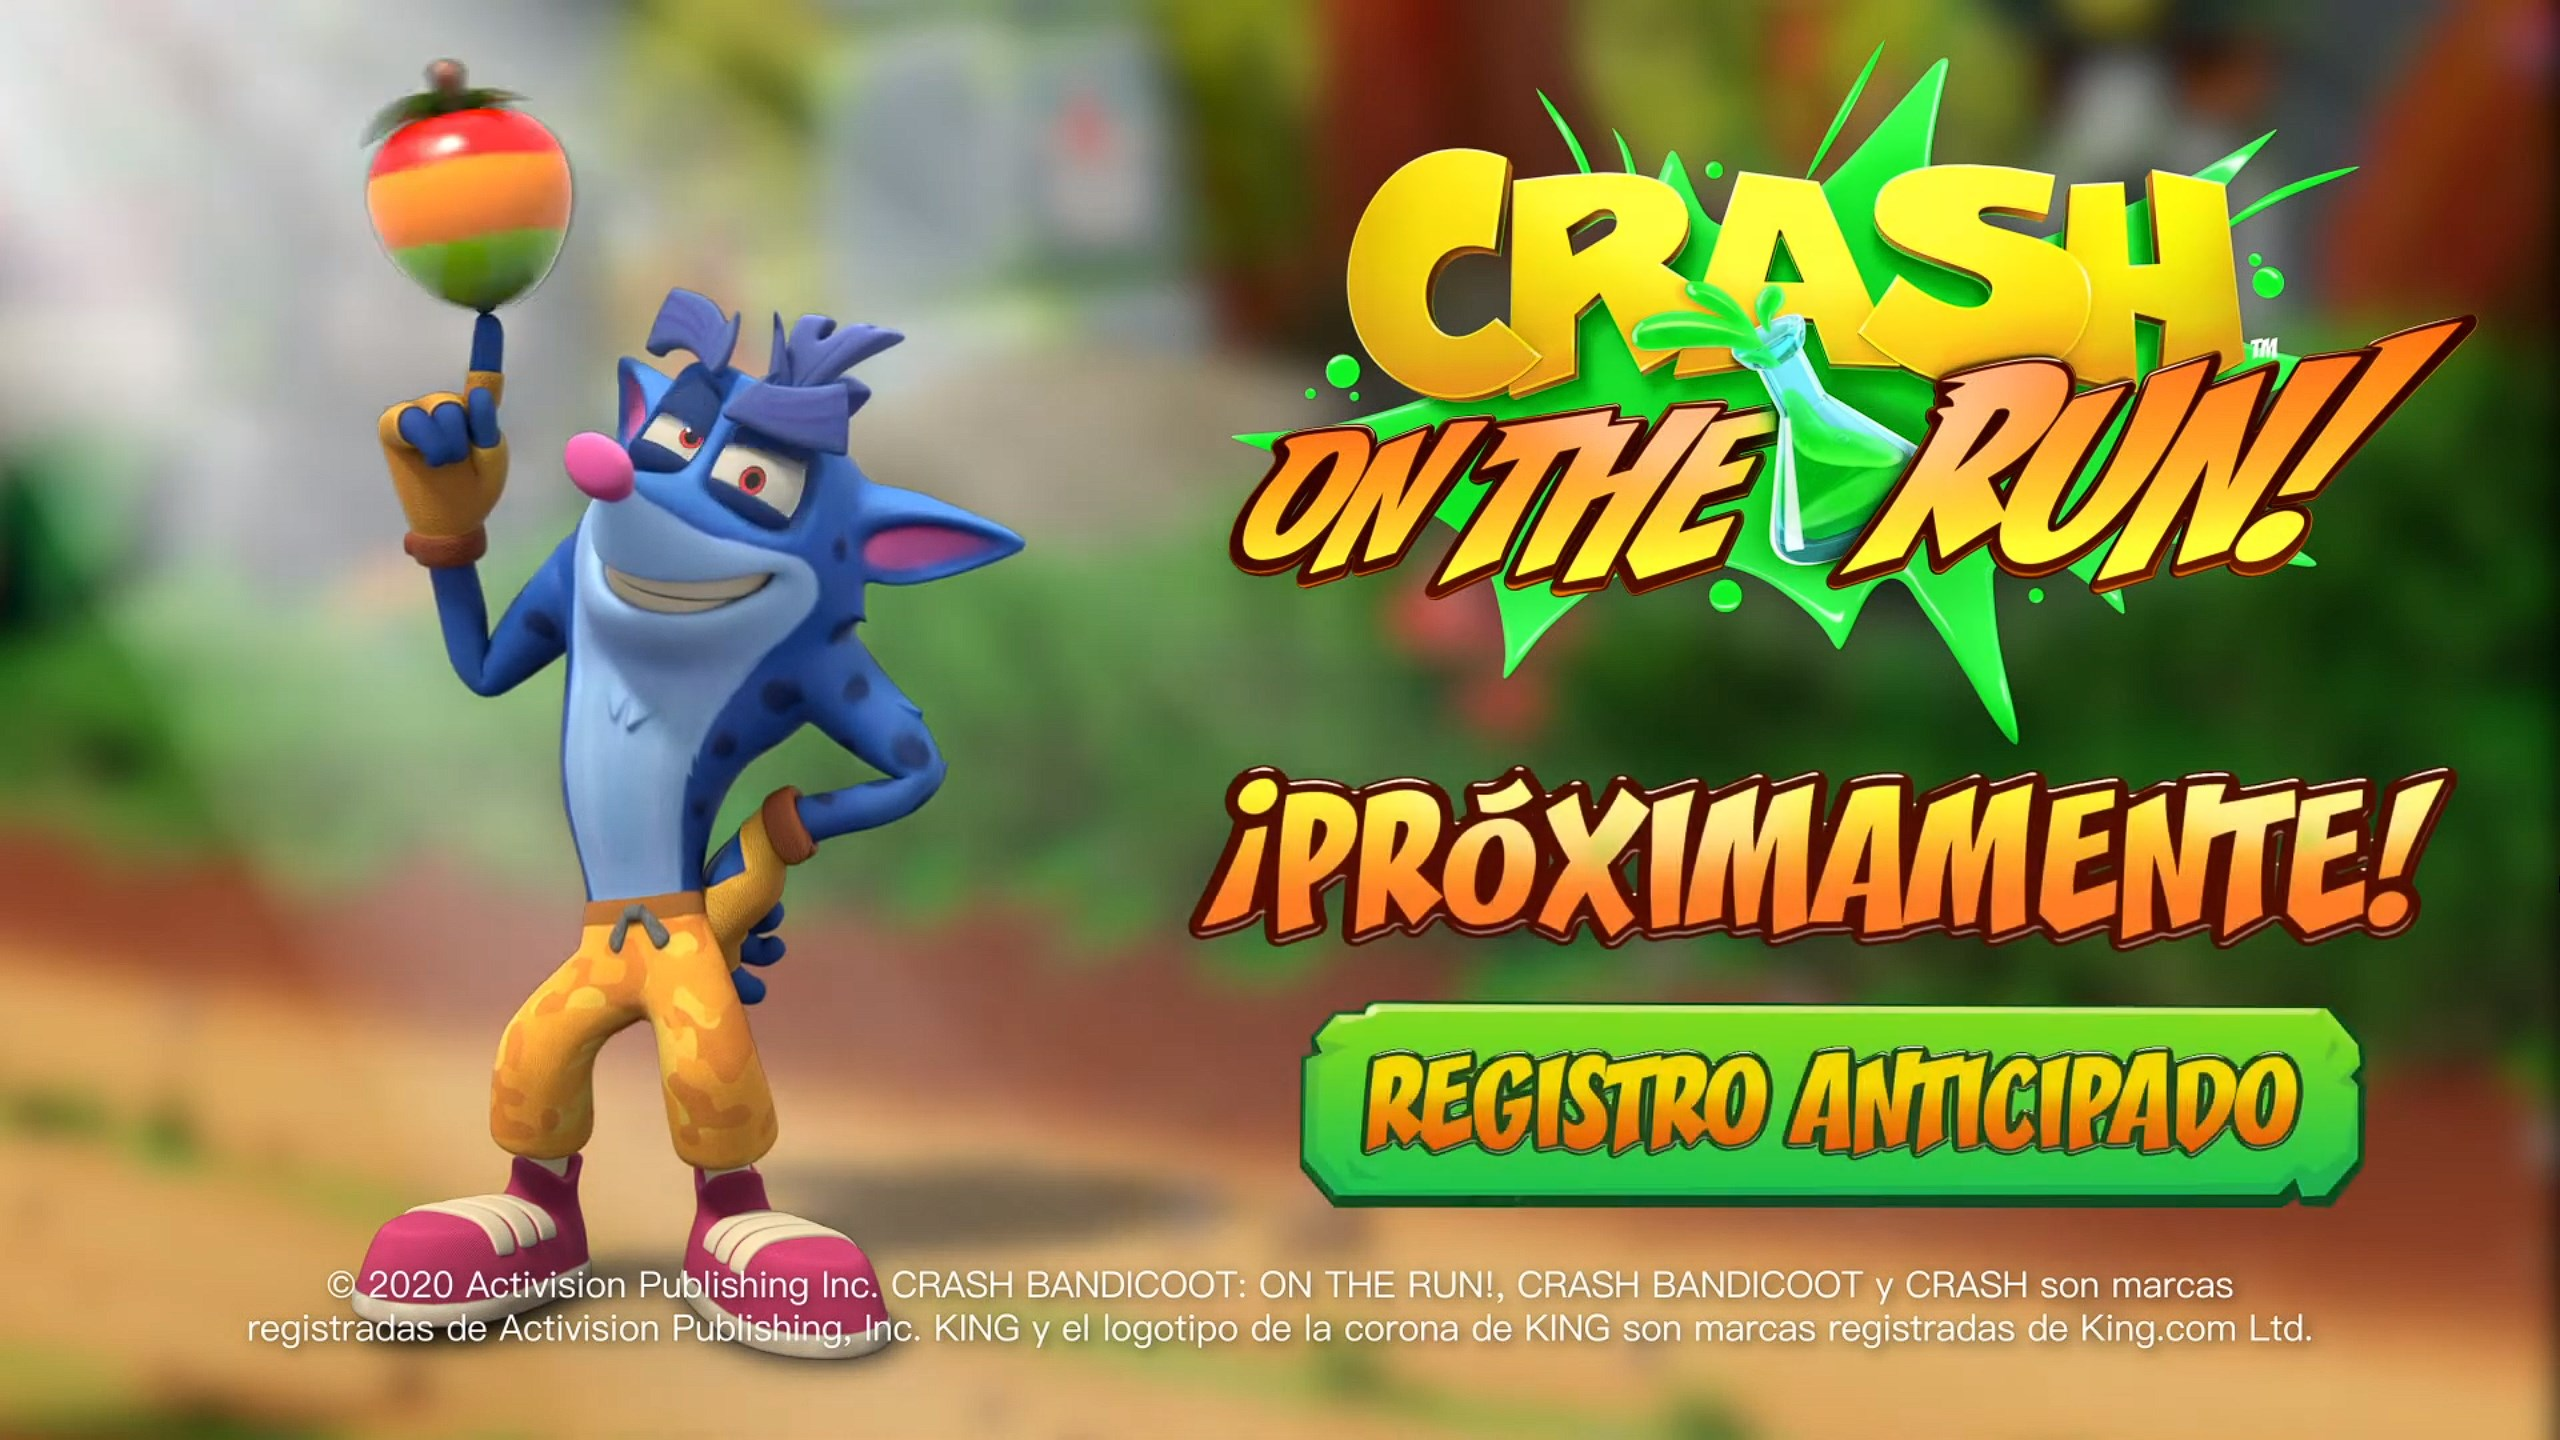 Crash Bandicoot: On the Run! disponible para pre-registro en iOS y Android.